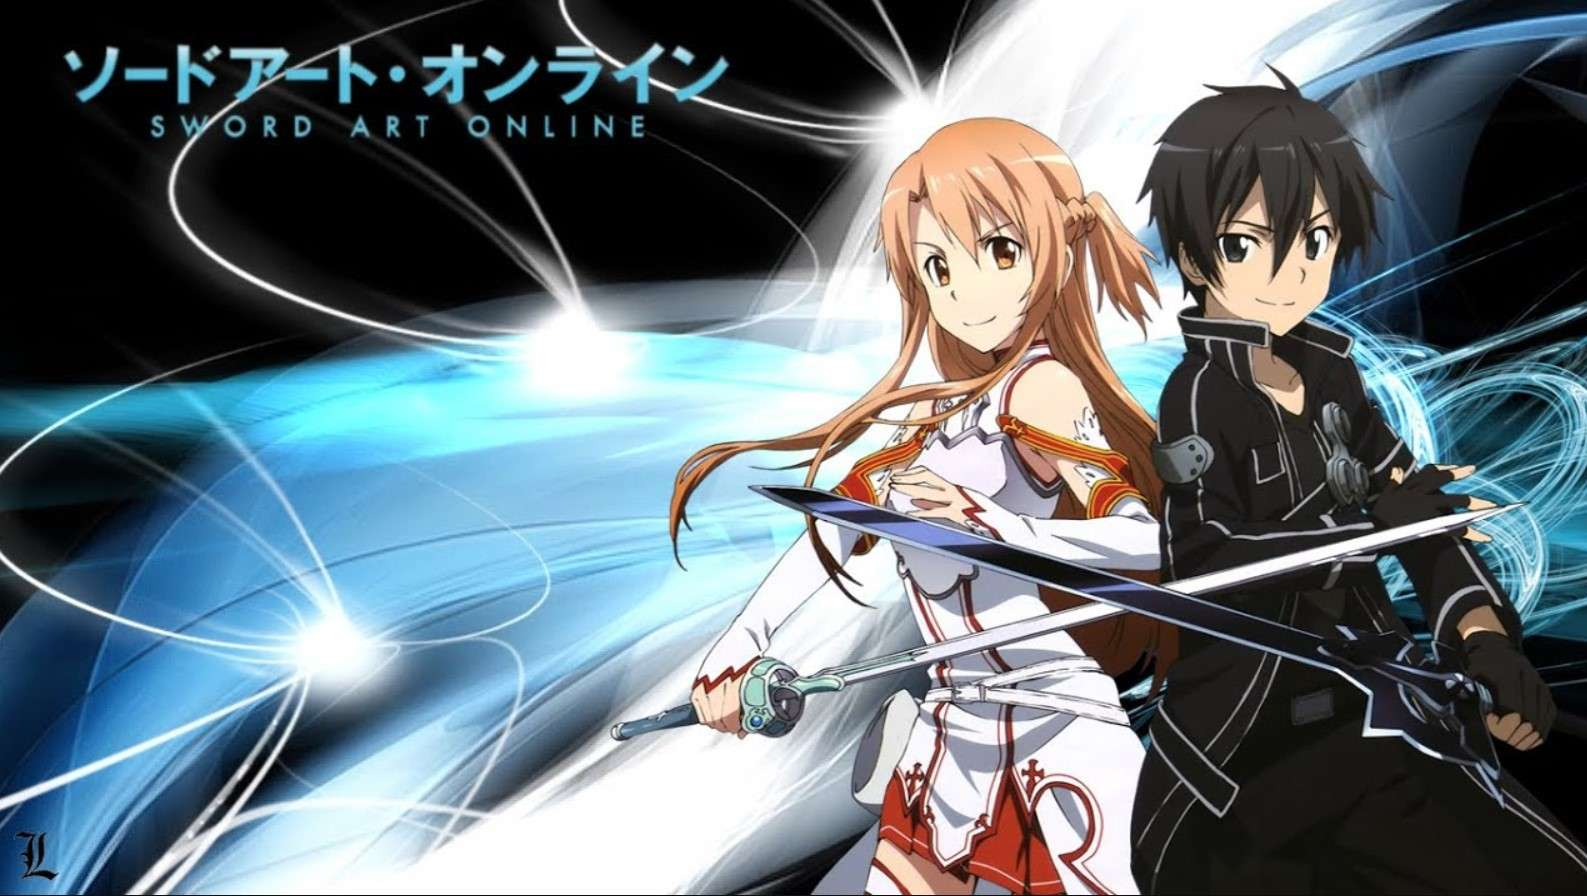 Sword Art Online- anime like overlord